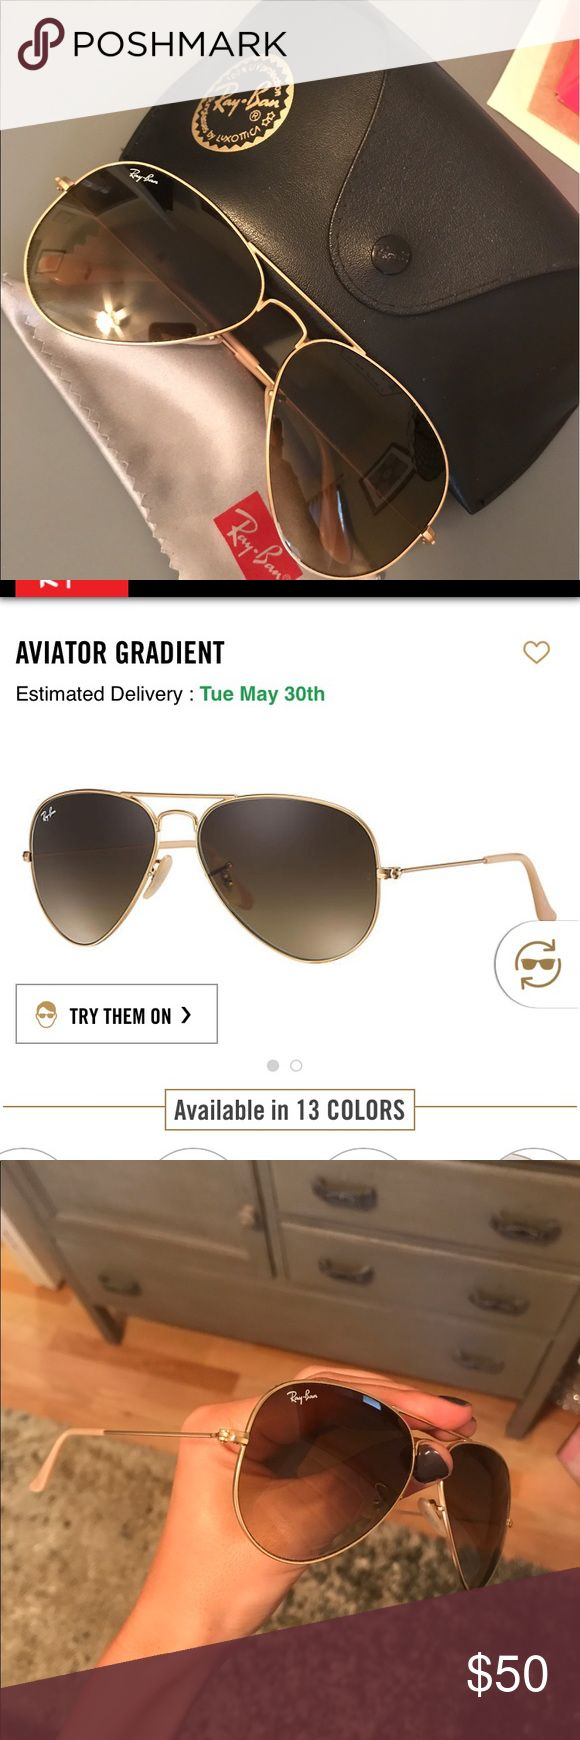 Ray-Ban Aviators - Women's RB 3025 Women's Ray-Ban RB 3025.  Classic gold aviator sunglasses. Gold frame with brown gradient tint.  Great condition, like new. Message me if you have any questions!! Case and cleaning cloth are included :) Ray-Ban Accessori